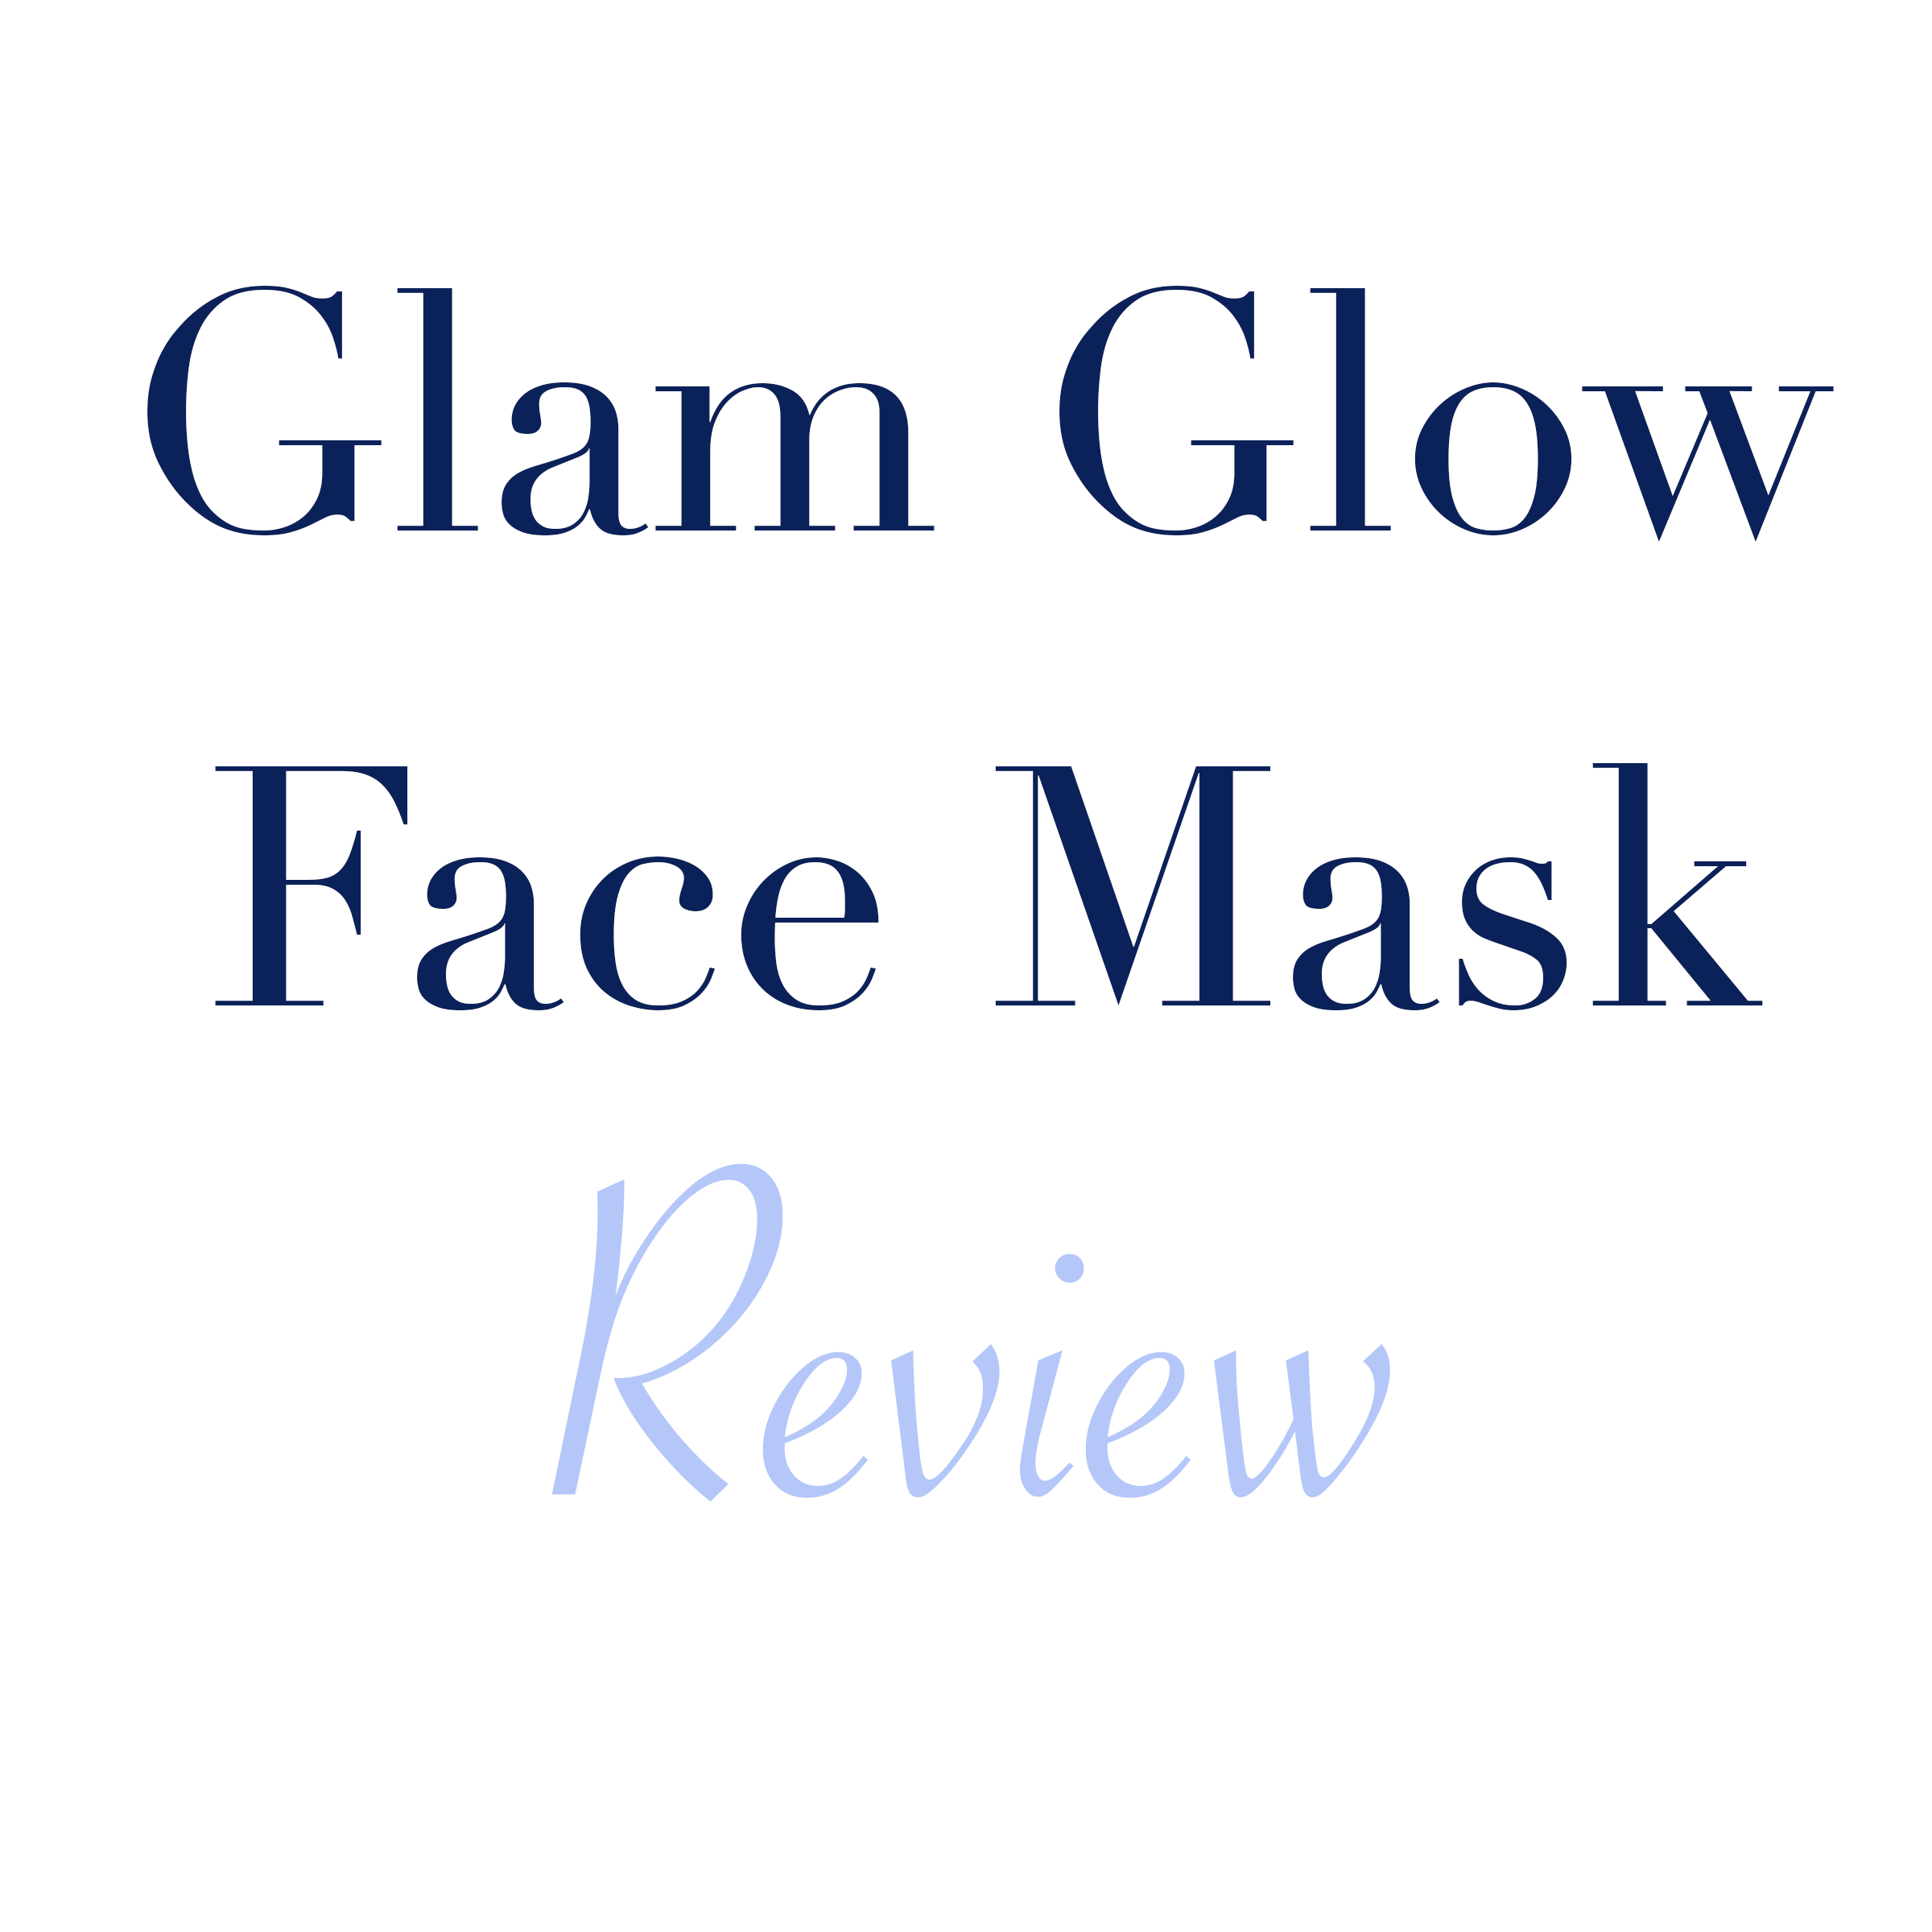 Glam Glow Face Mask Review